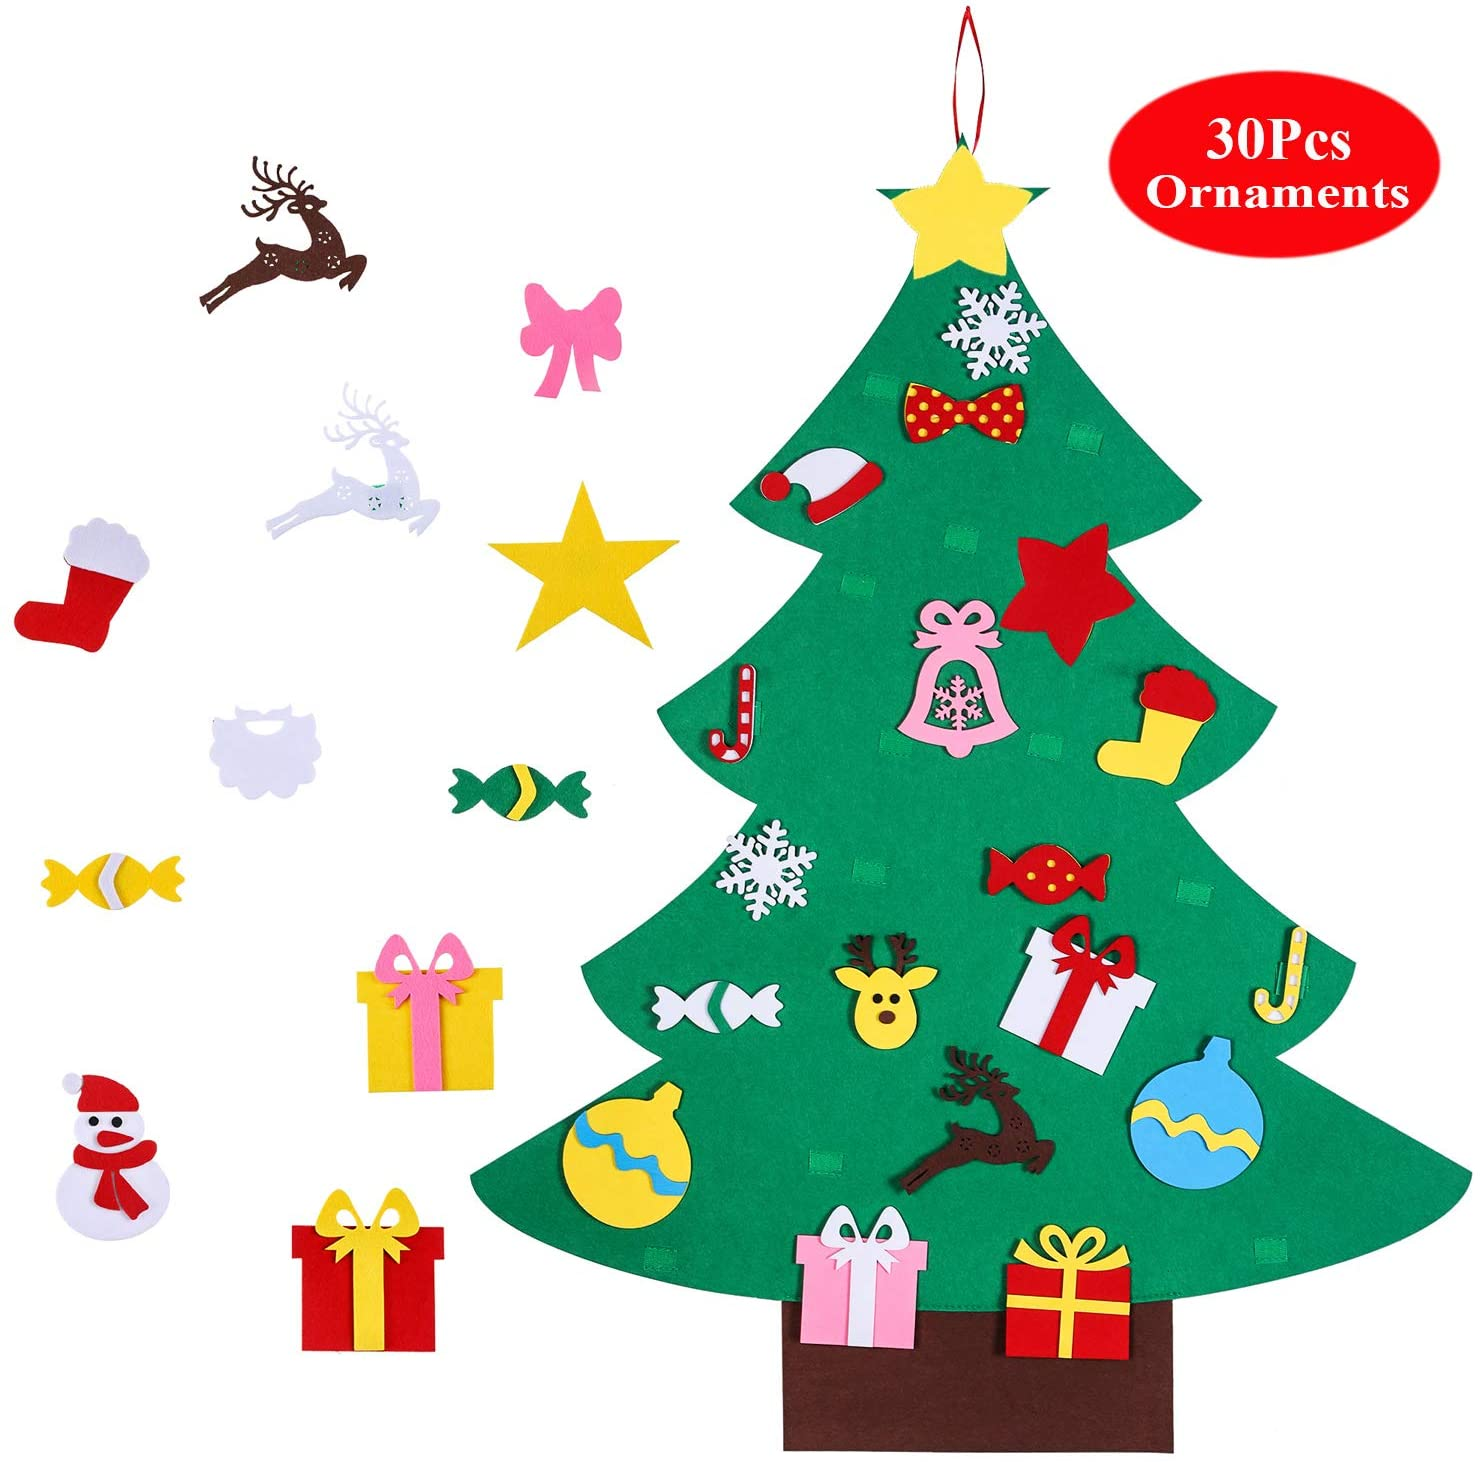 Antner 3.25ft Felt Christmas Tree with 30pcs Xmas Ornaments DIY Tree Decorative Accessories Christmas Home Door Wall Hanging Decorations Christmas Decor